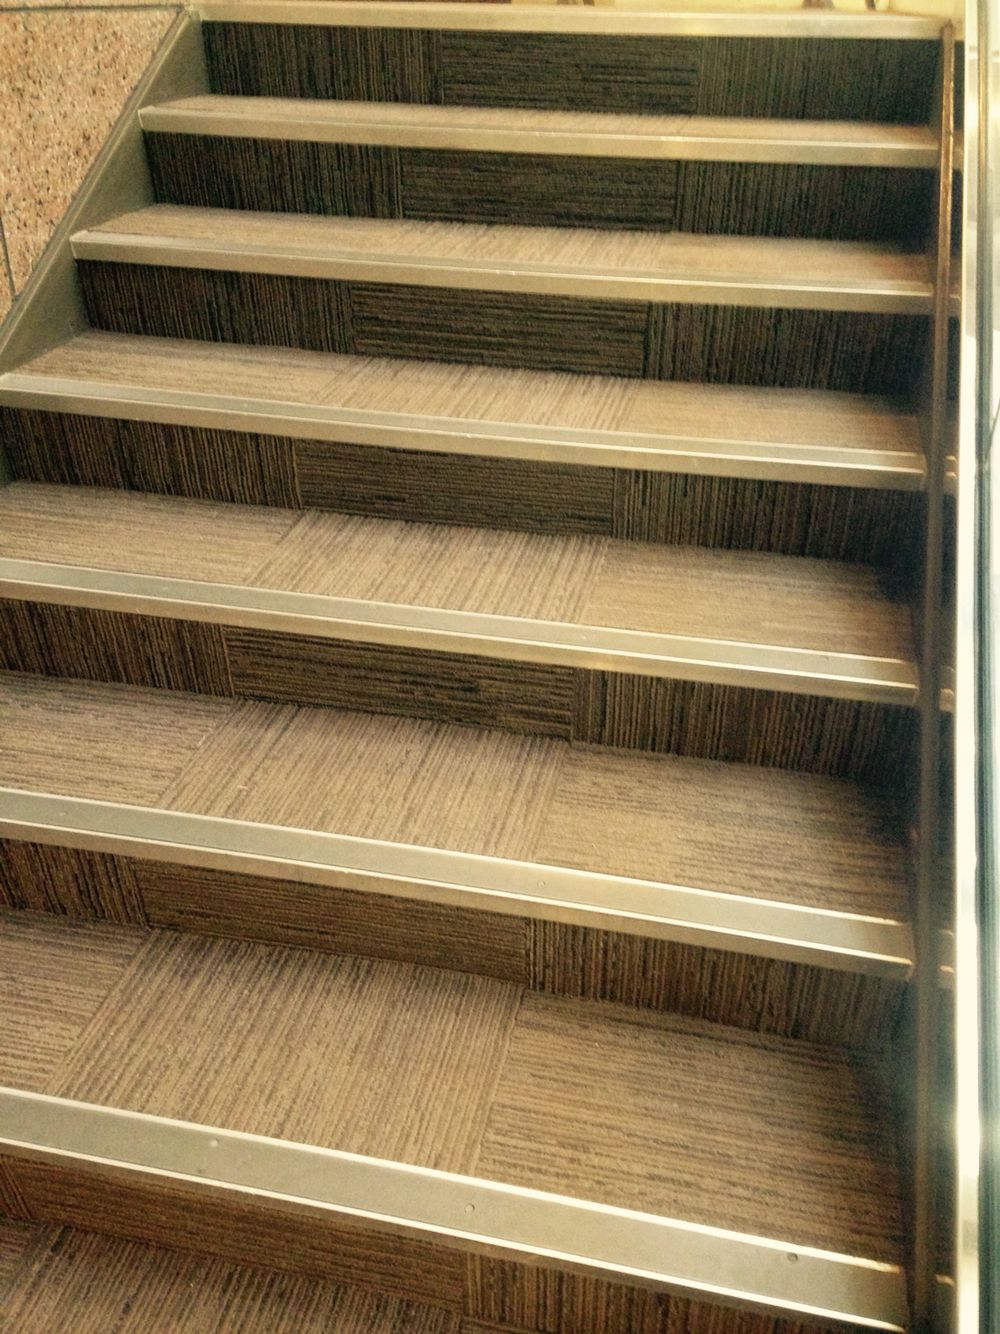 Interface Carpet Tile With Stair Nosing At Our Headquarters In LaGrange, GA Tile  Stairs,